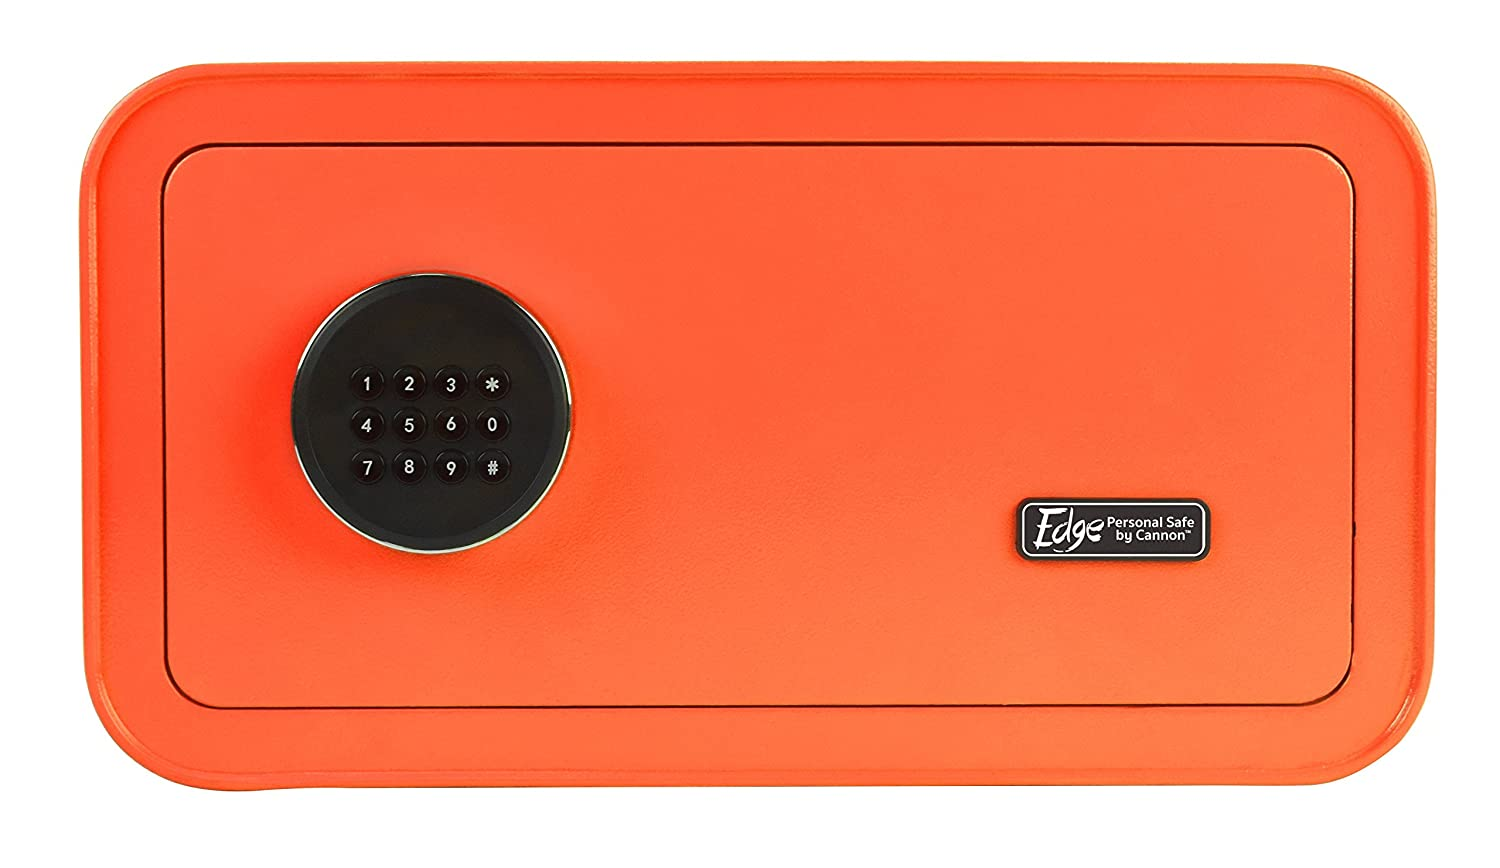 Amazon.com: Cannon Safe E916-CSUM-17 The Edge Personal Safe by Cannon Orange: Home Improvement